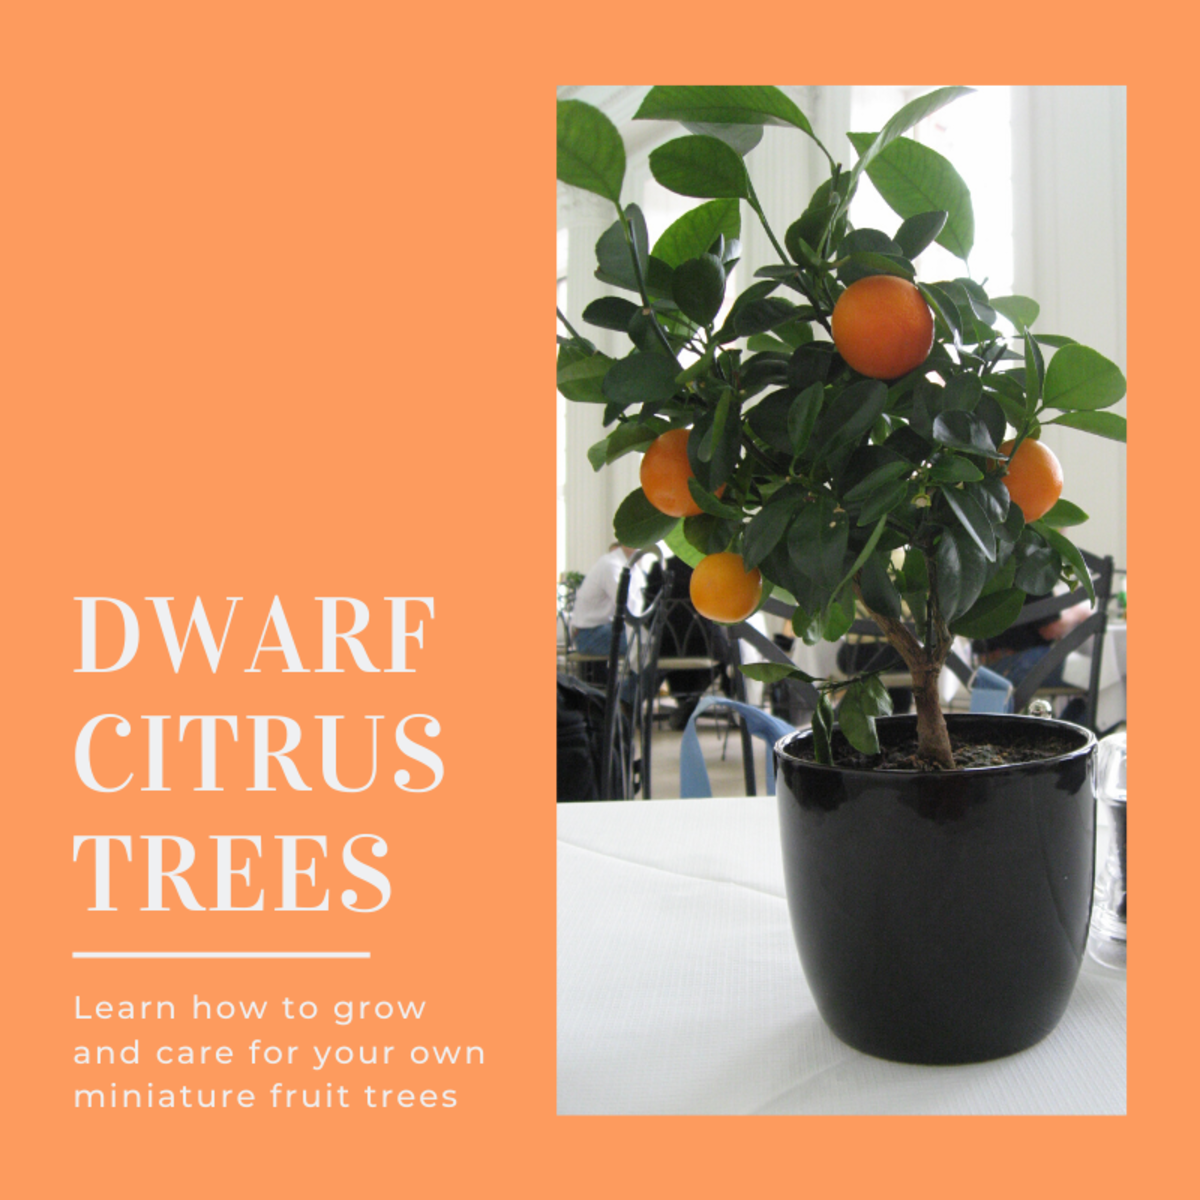 This article will break down some of the differences between various dwarf citrus trees and provide information on how to grow and care for your own.